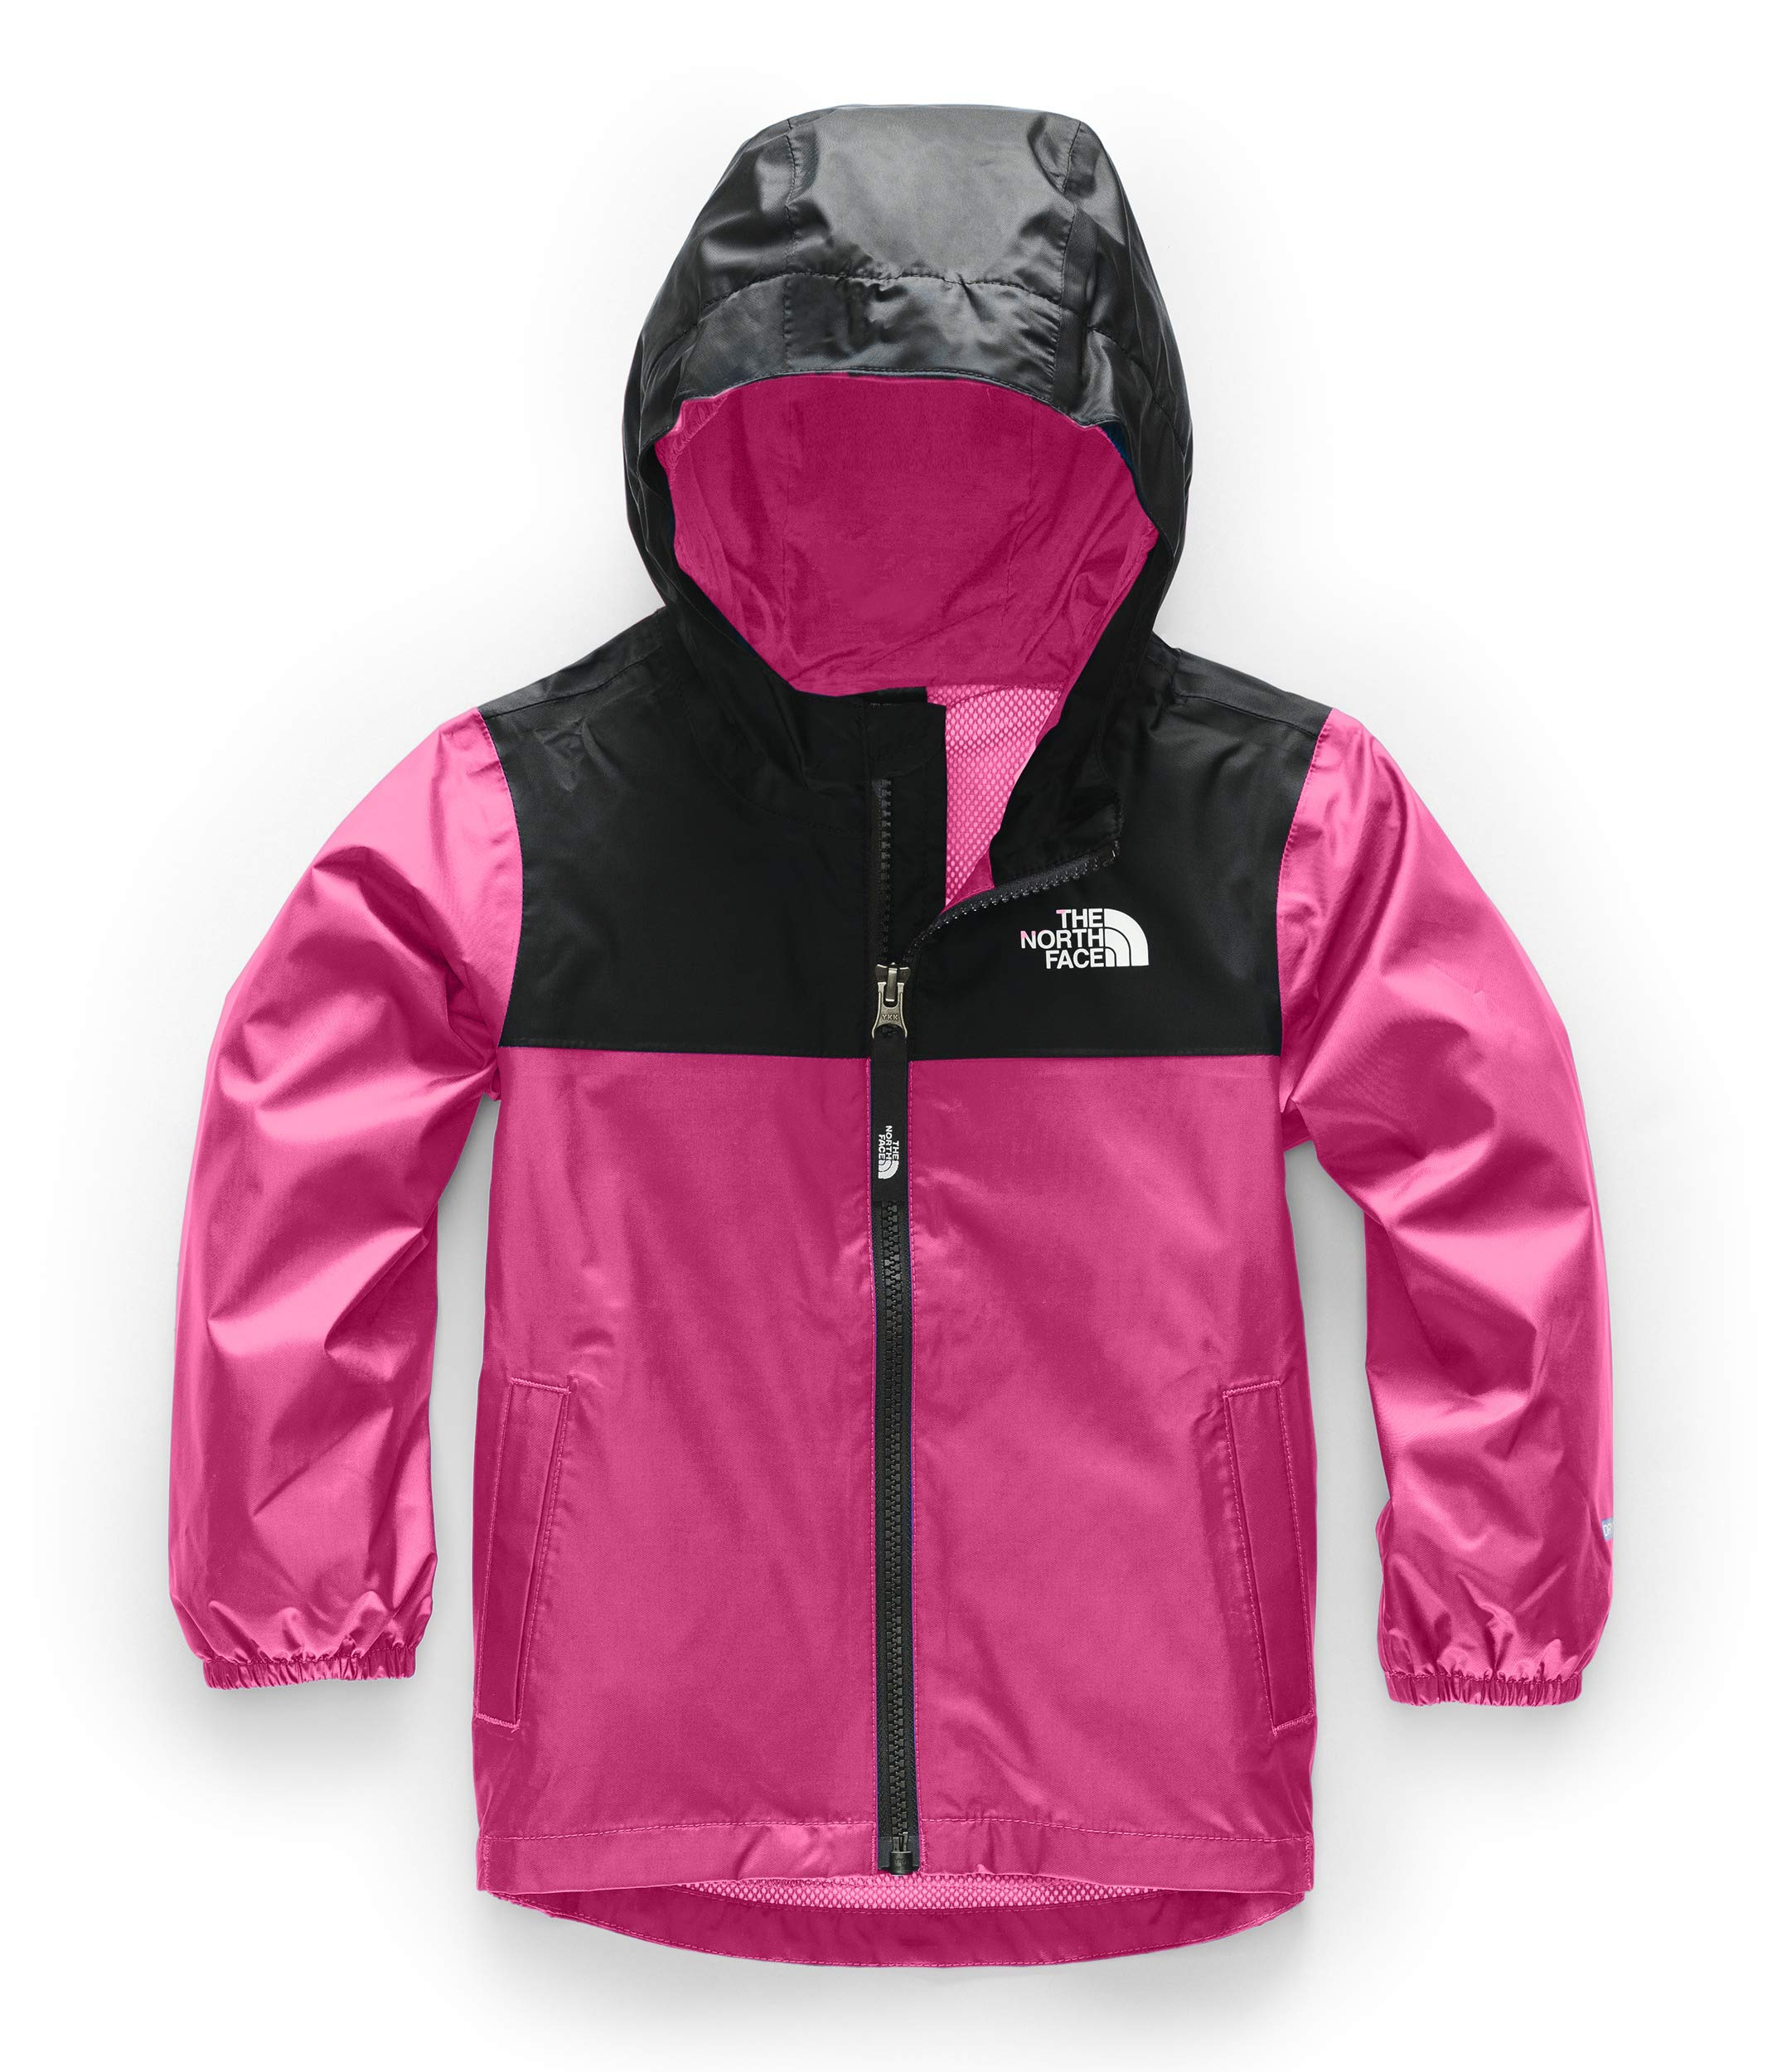 The North Face Toddler Boys' Zipline Rain Jacket by The North Face